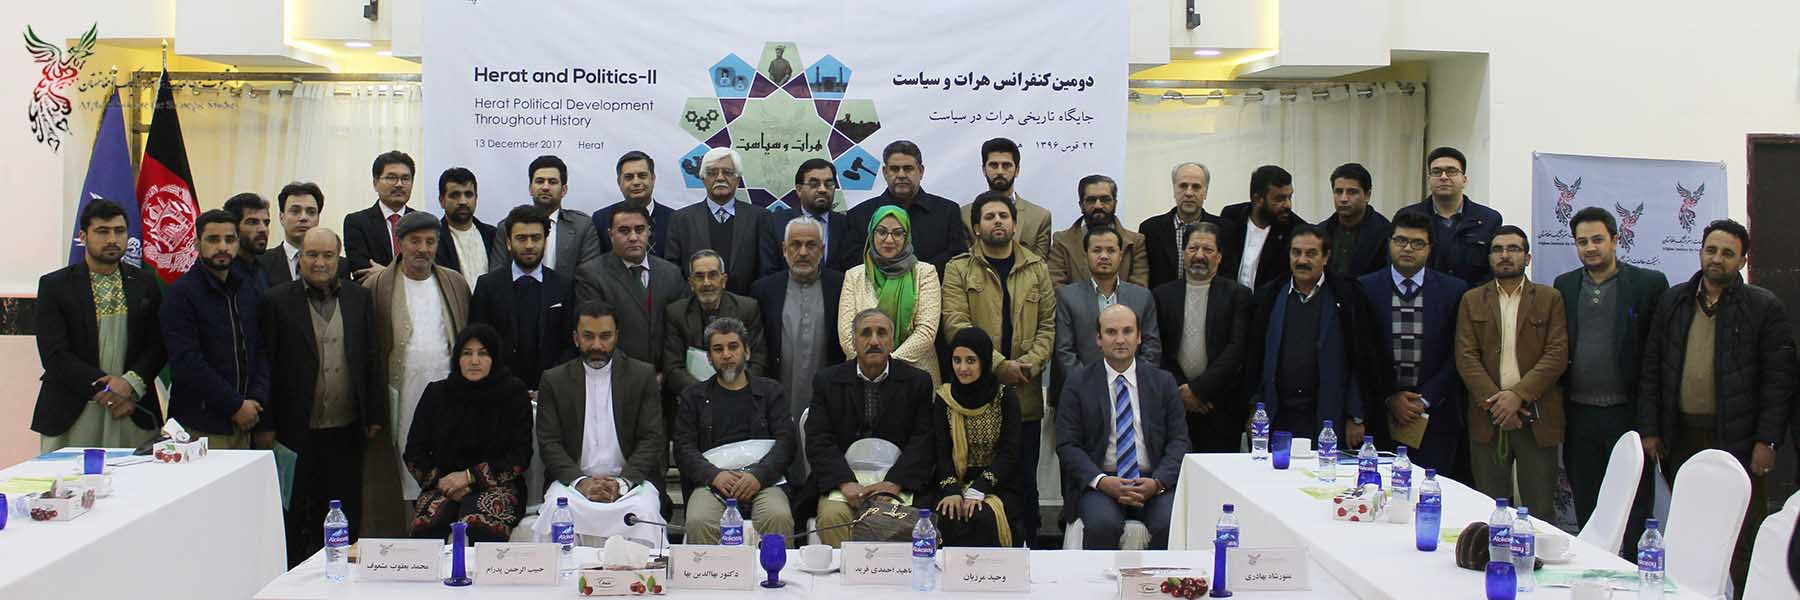 AISS organizes the second round of 'Herat and Politics' meeting